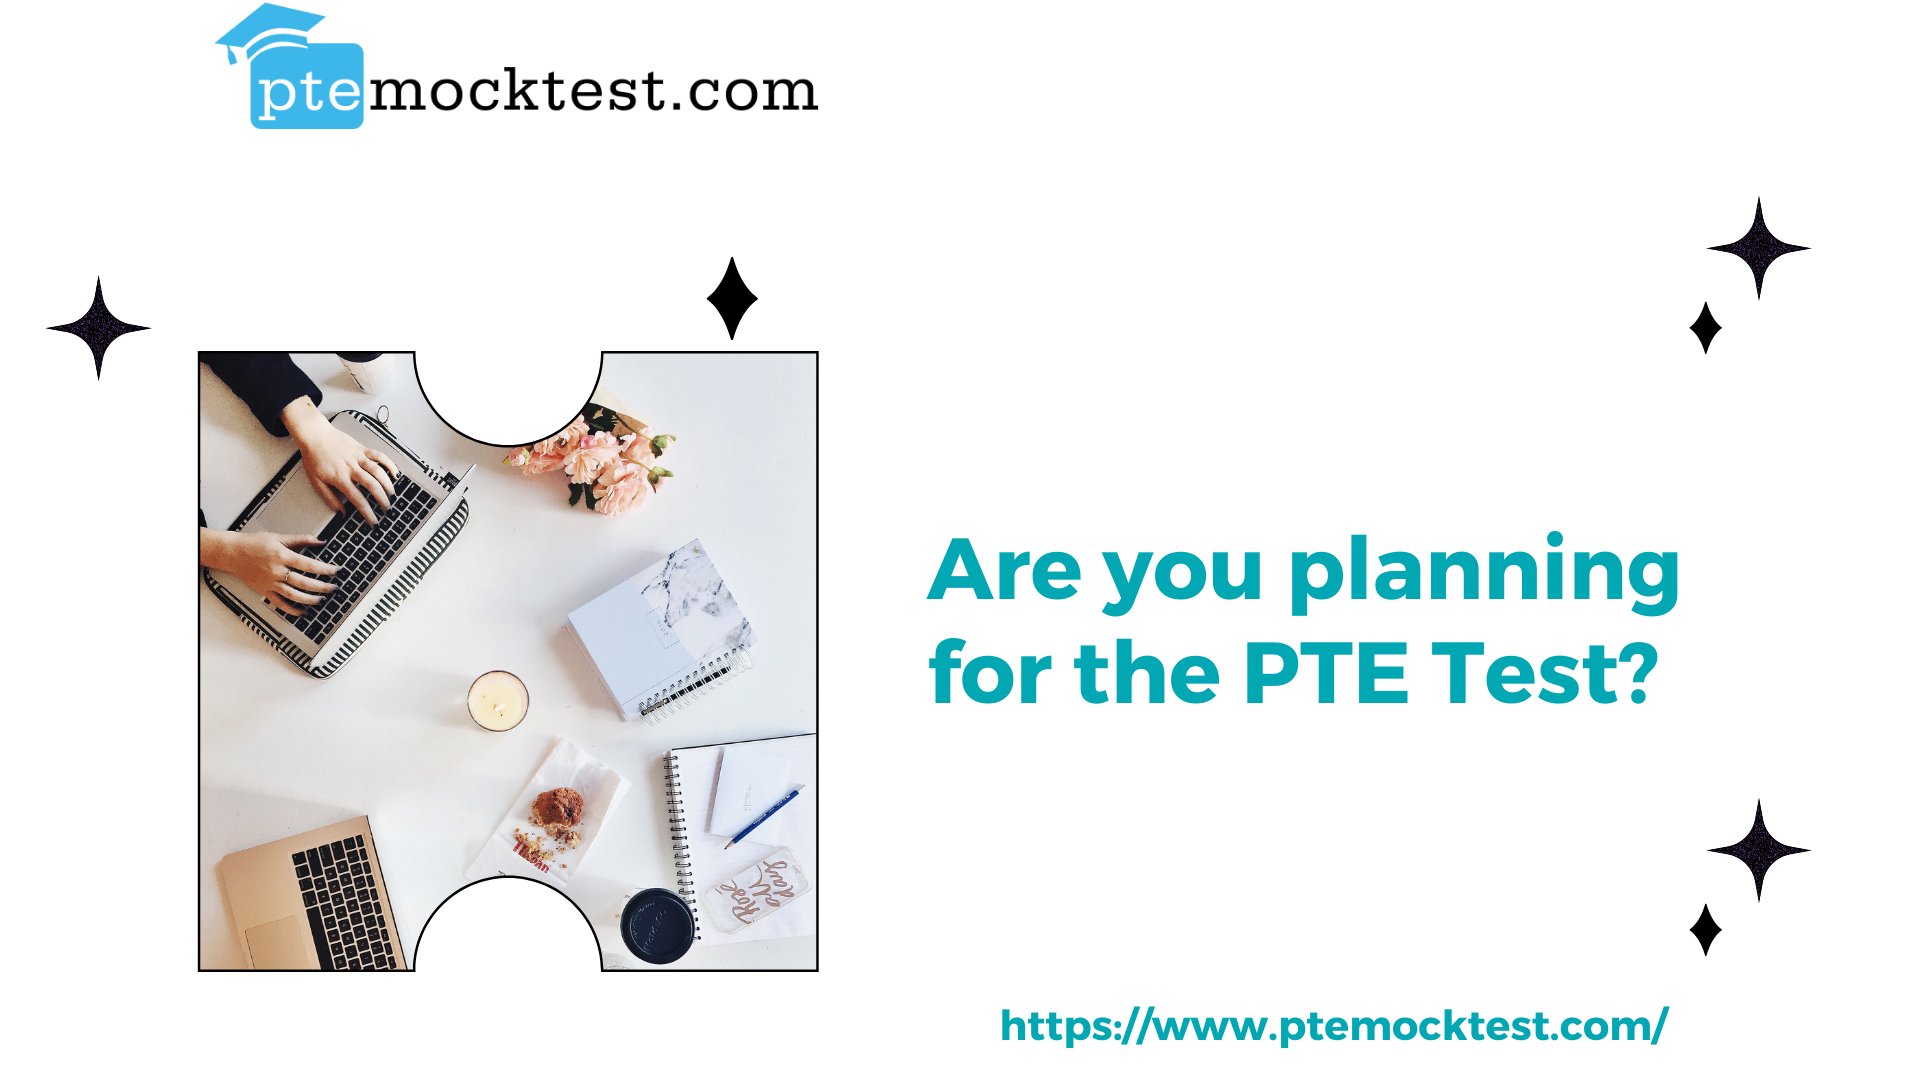 Are you planning for the PTE test?